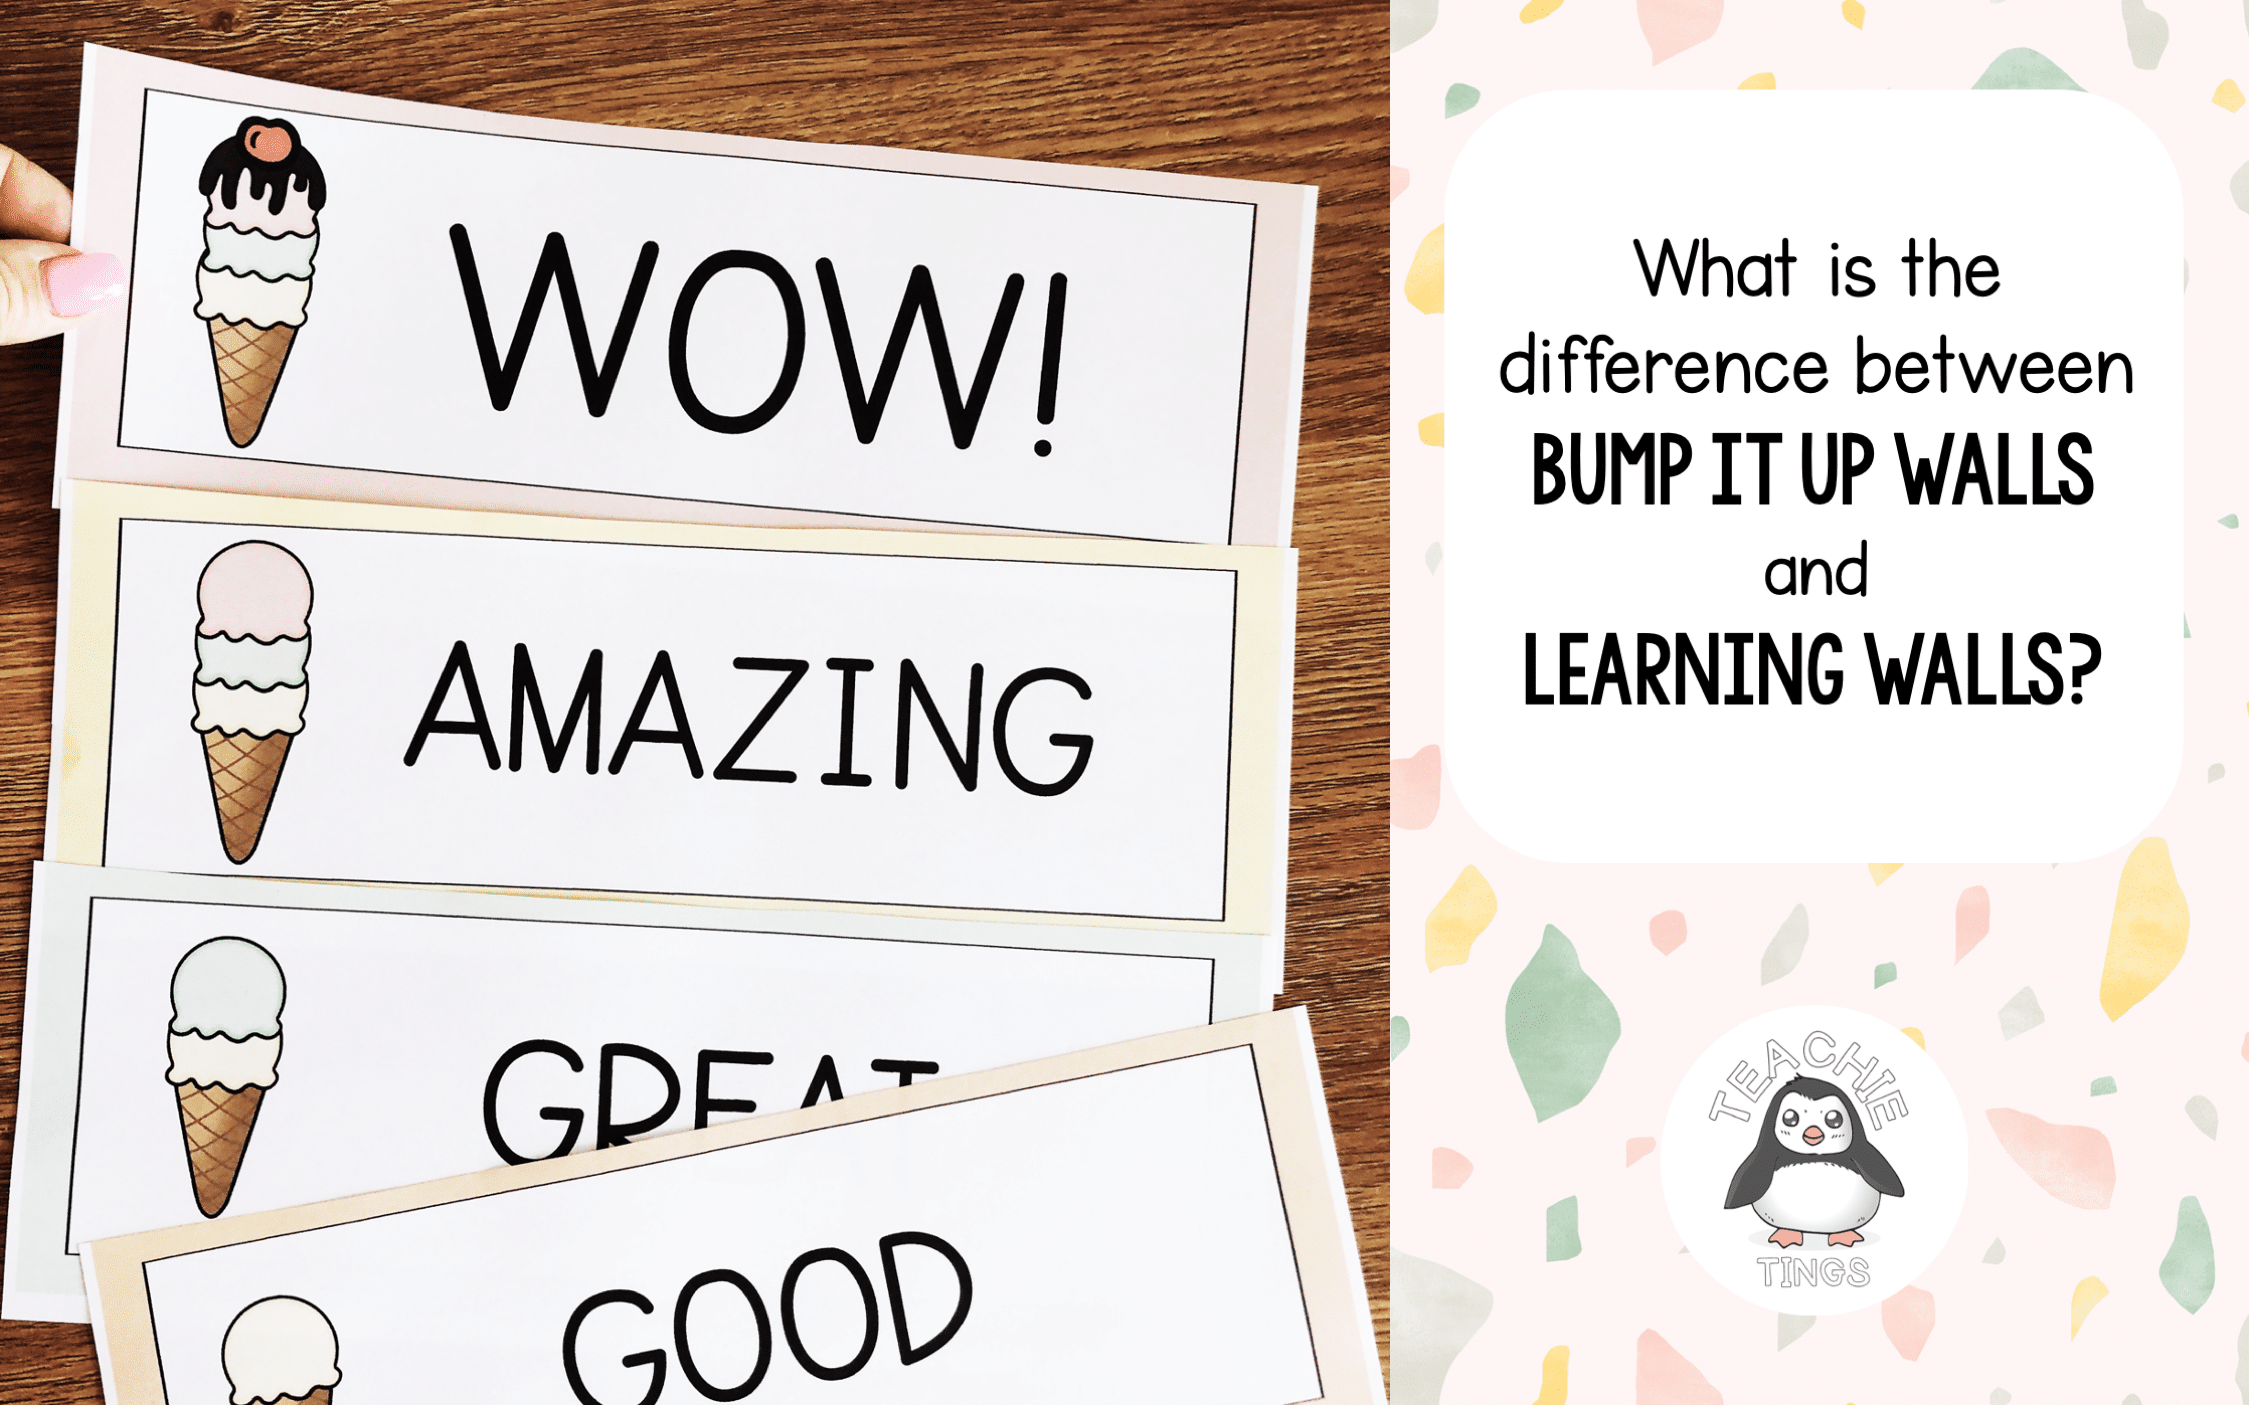 what is the difference between bump it up walls and learning walls?